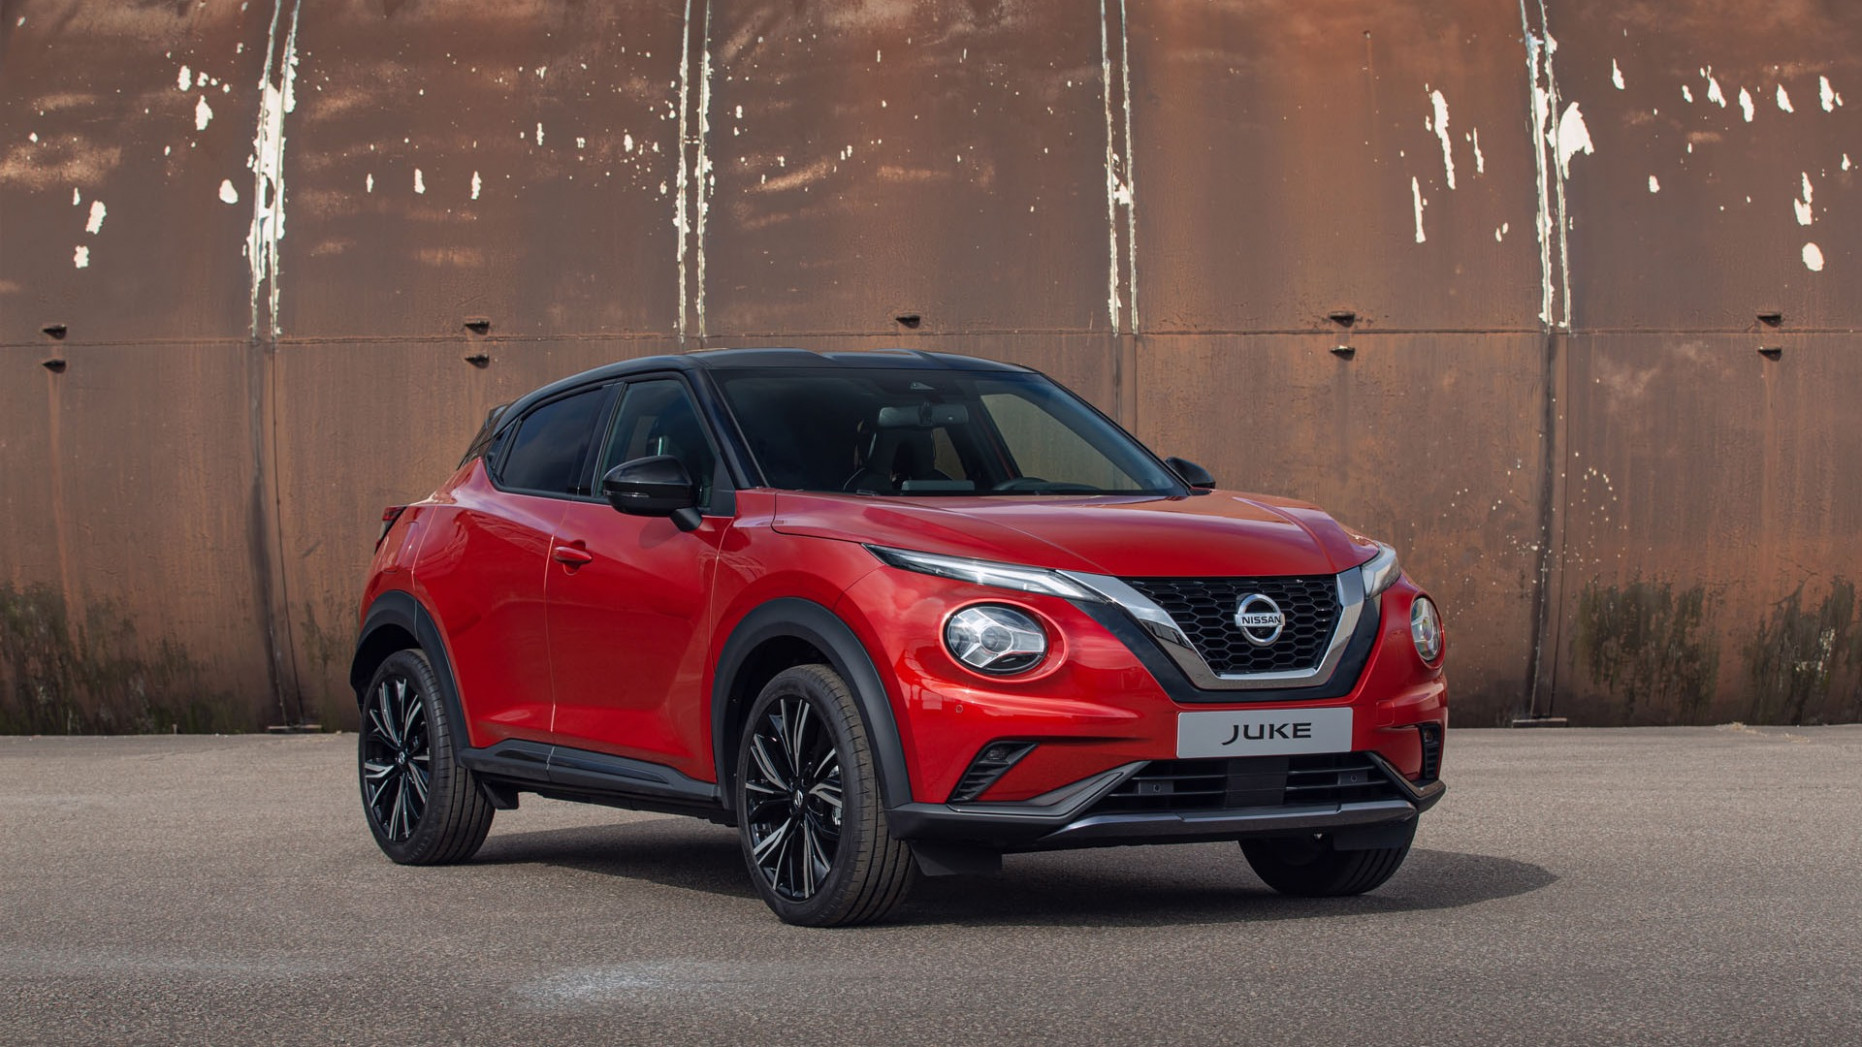 Ratings Nissan Juke Concept 2022